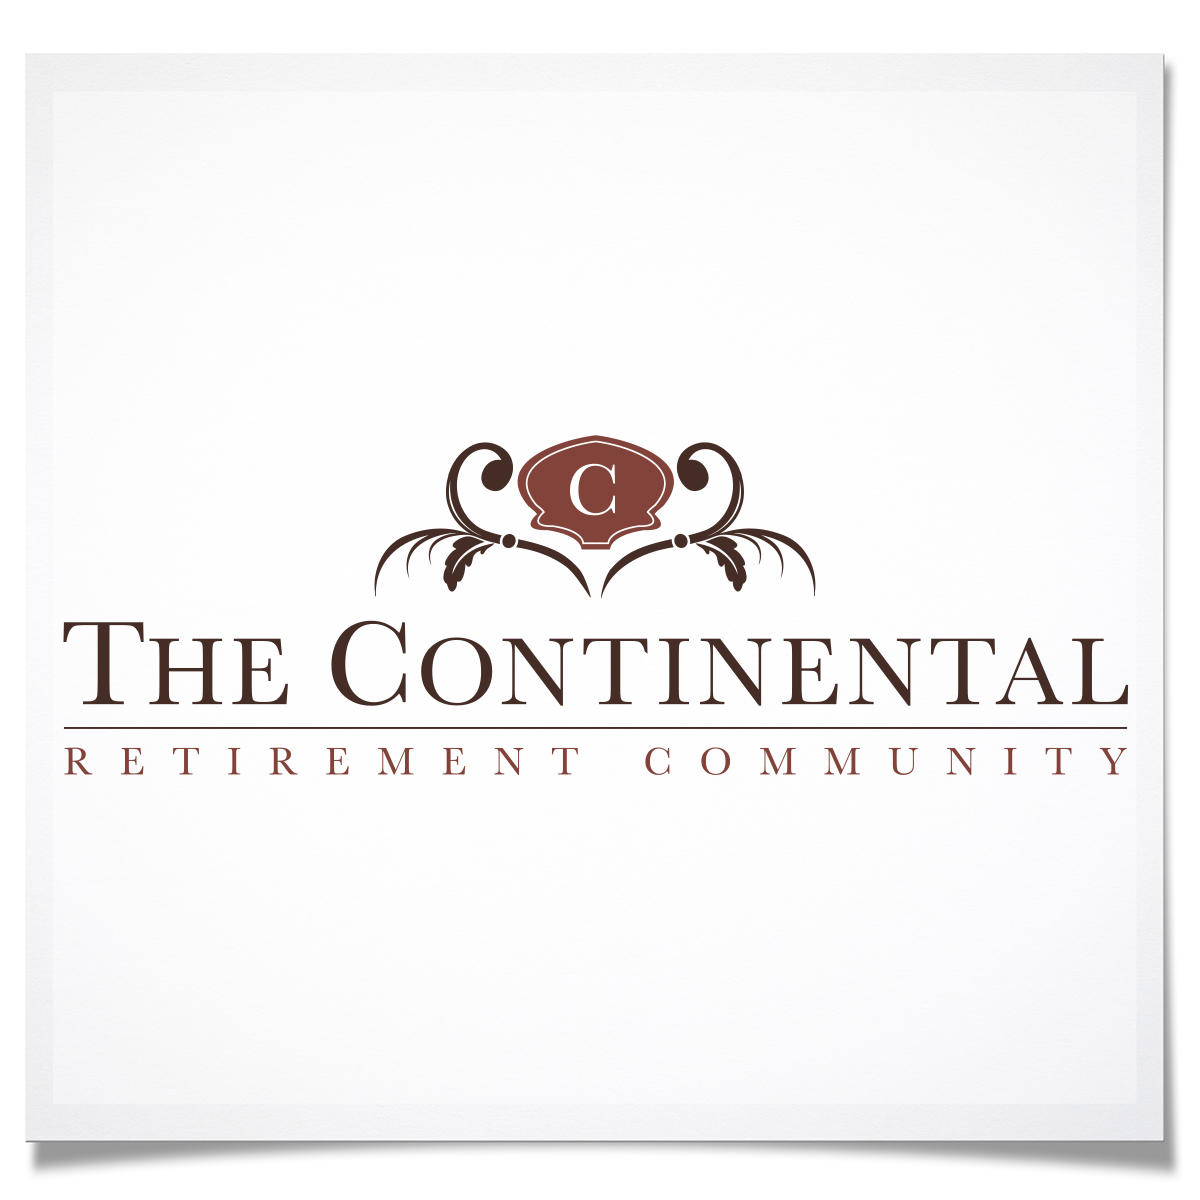 The Continental Retirement Community